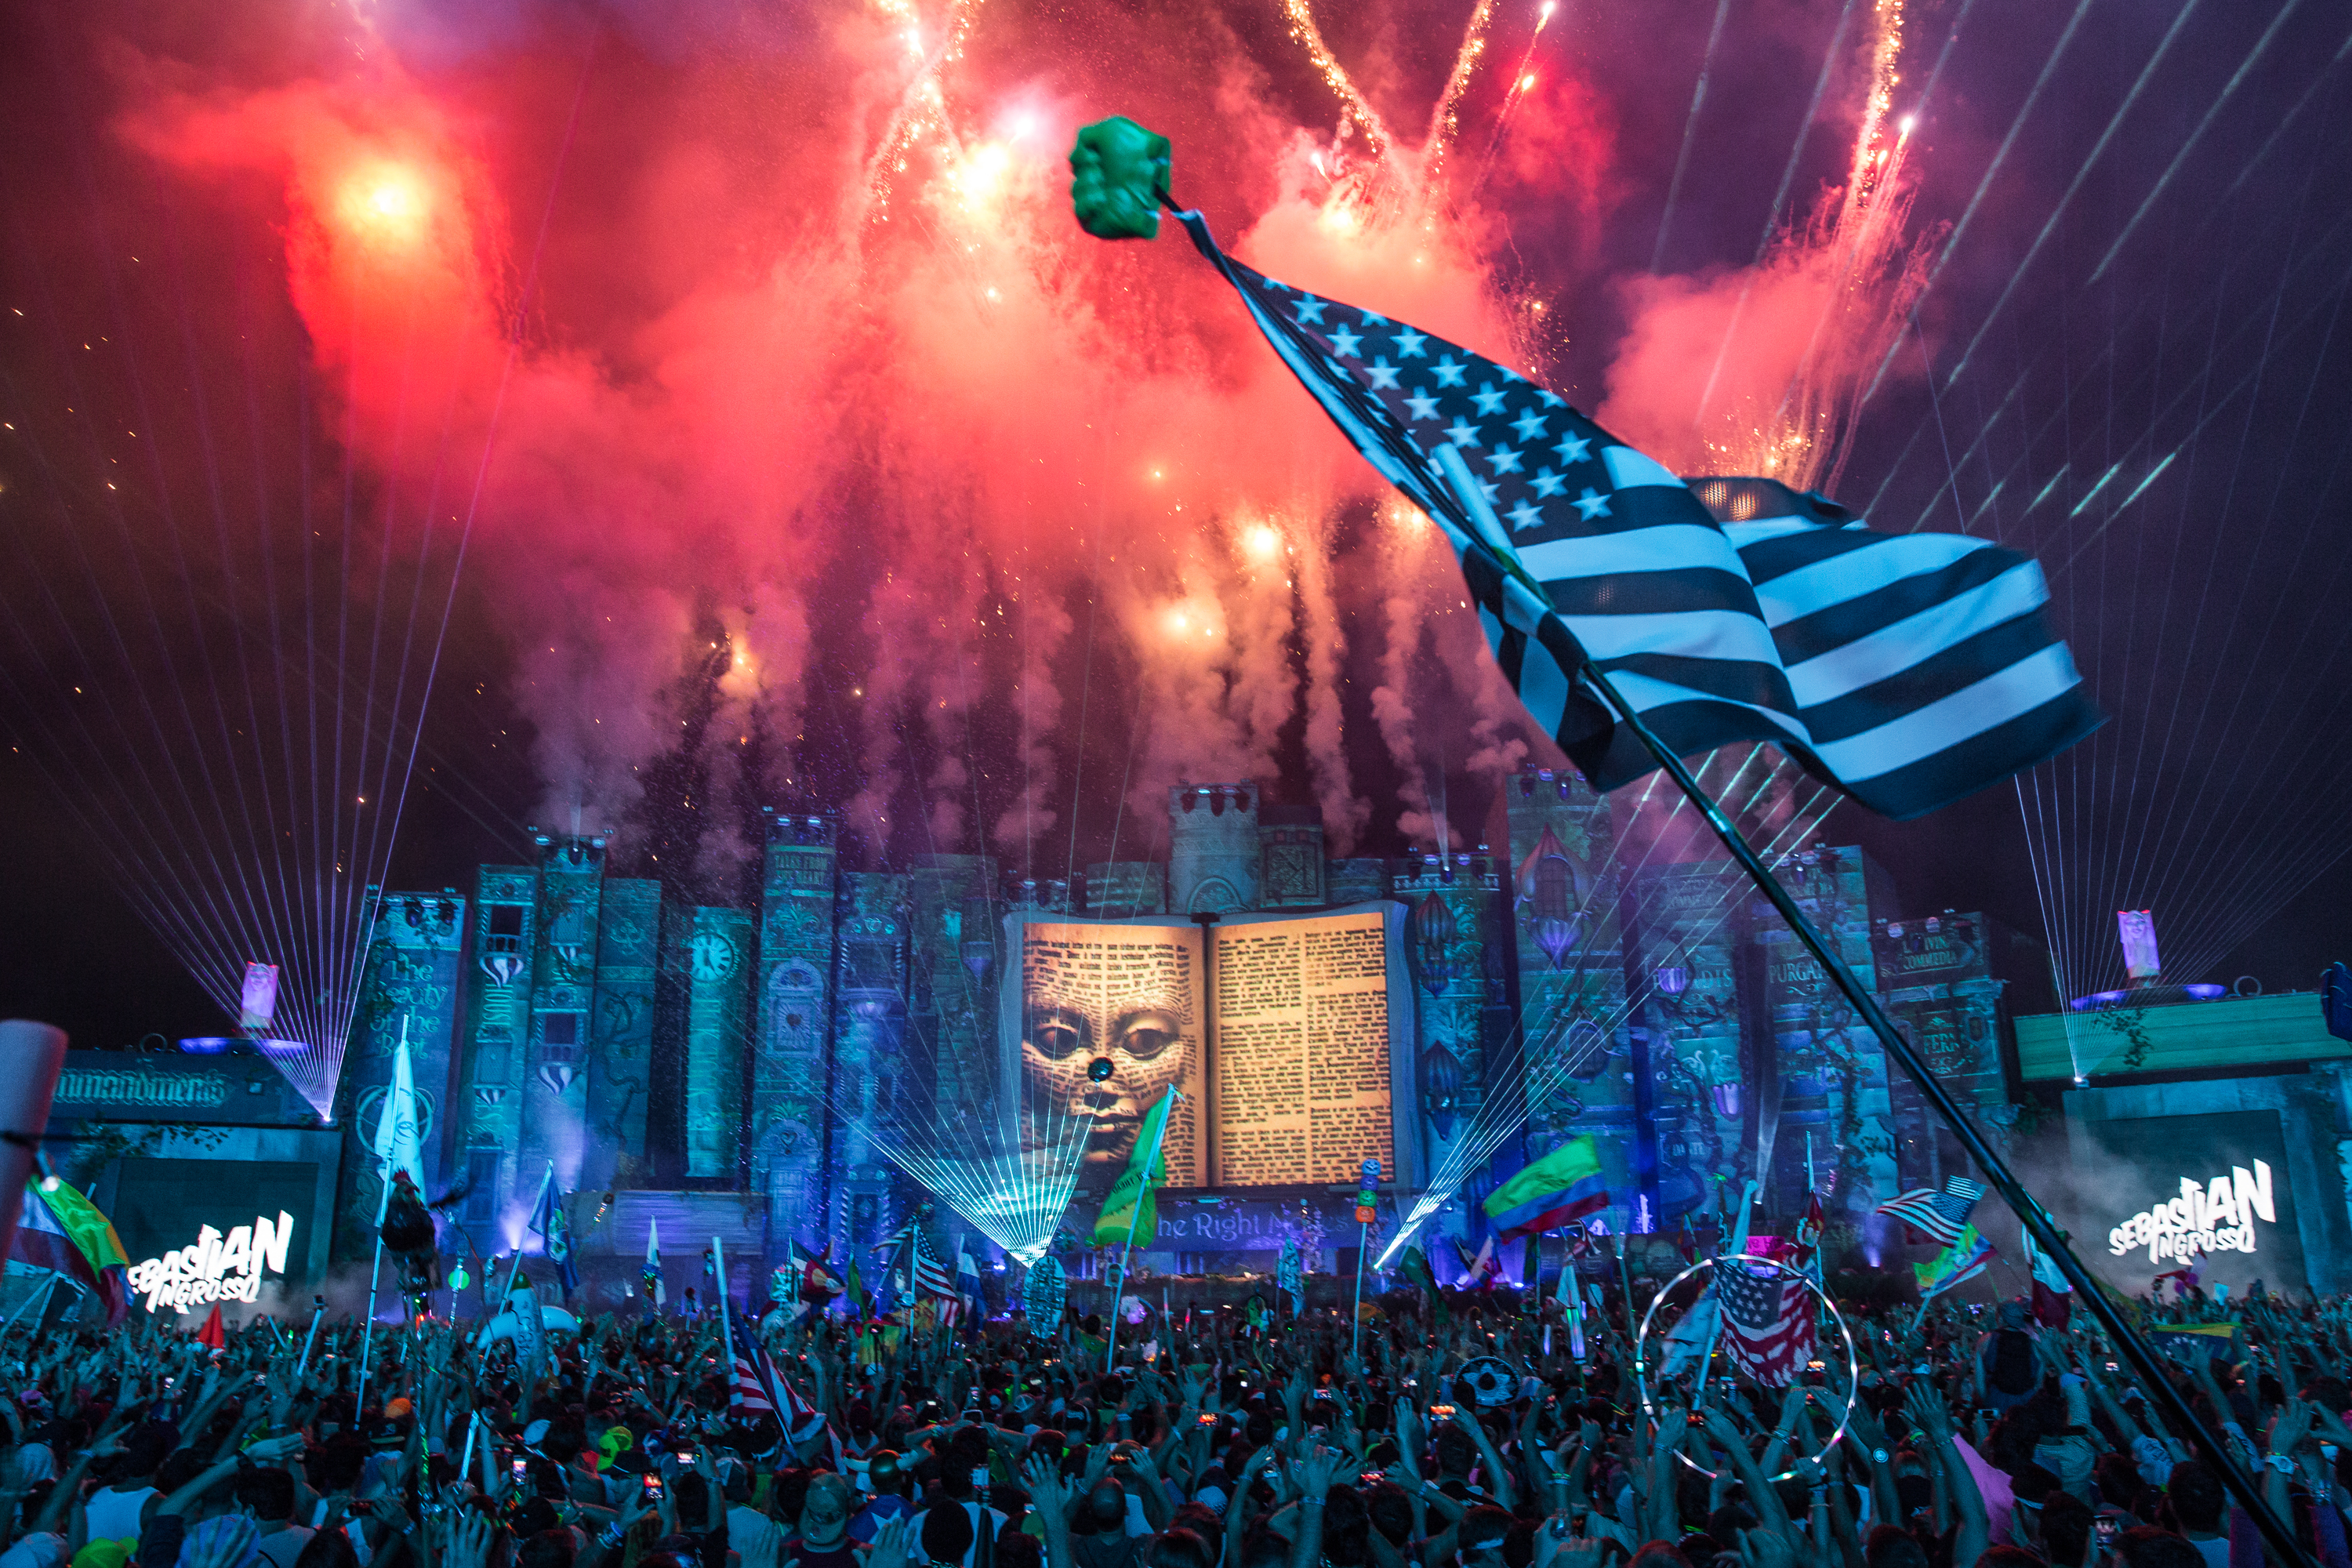 Massive: TomorrowWorld's astounding mainstage.